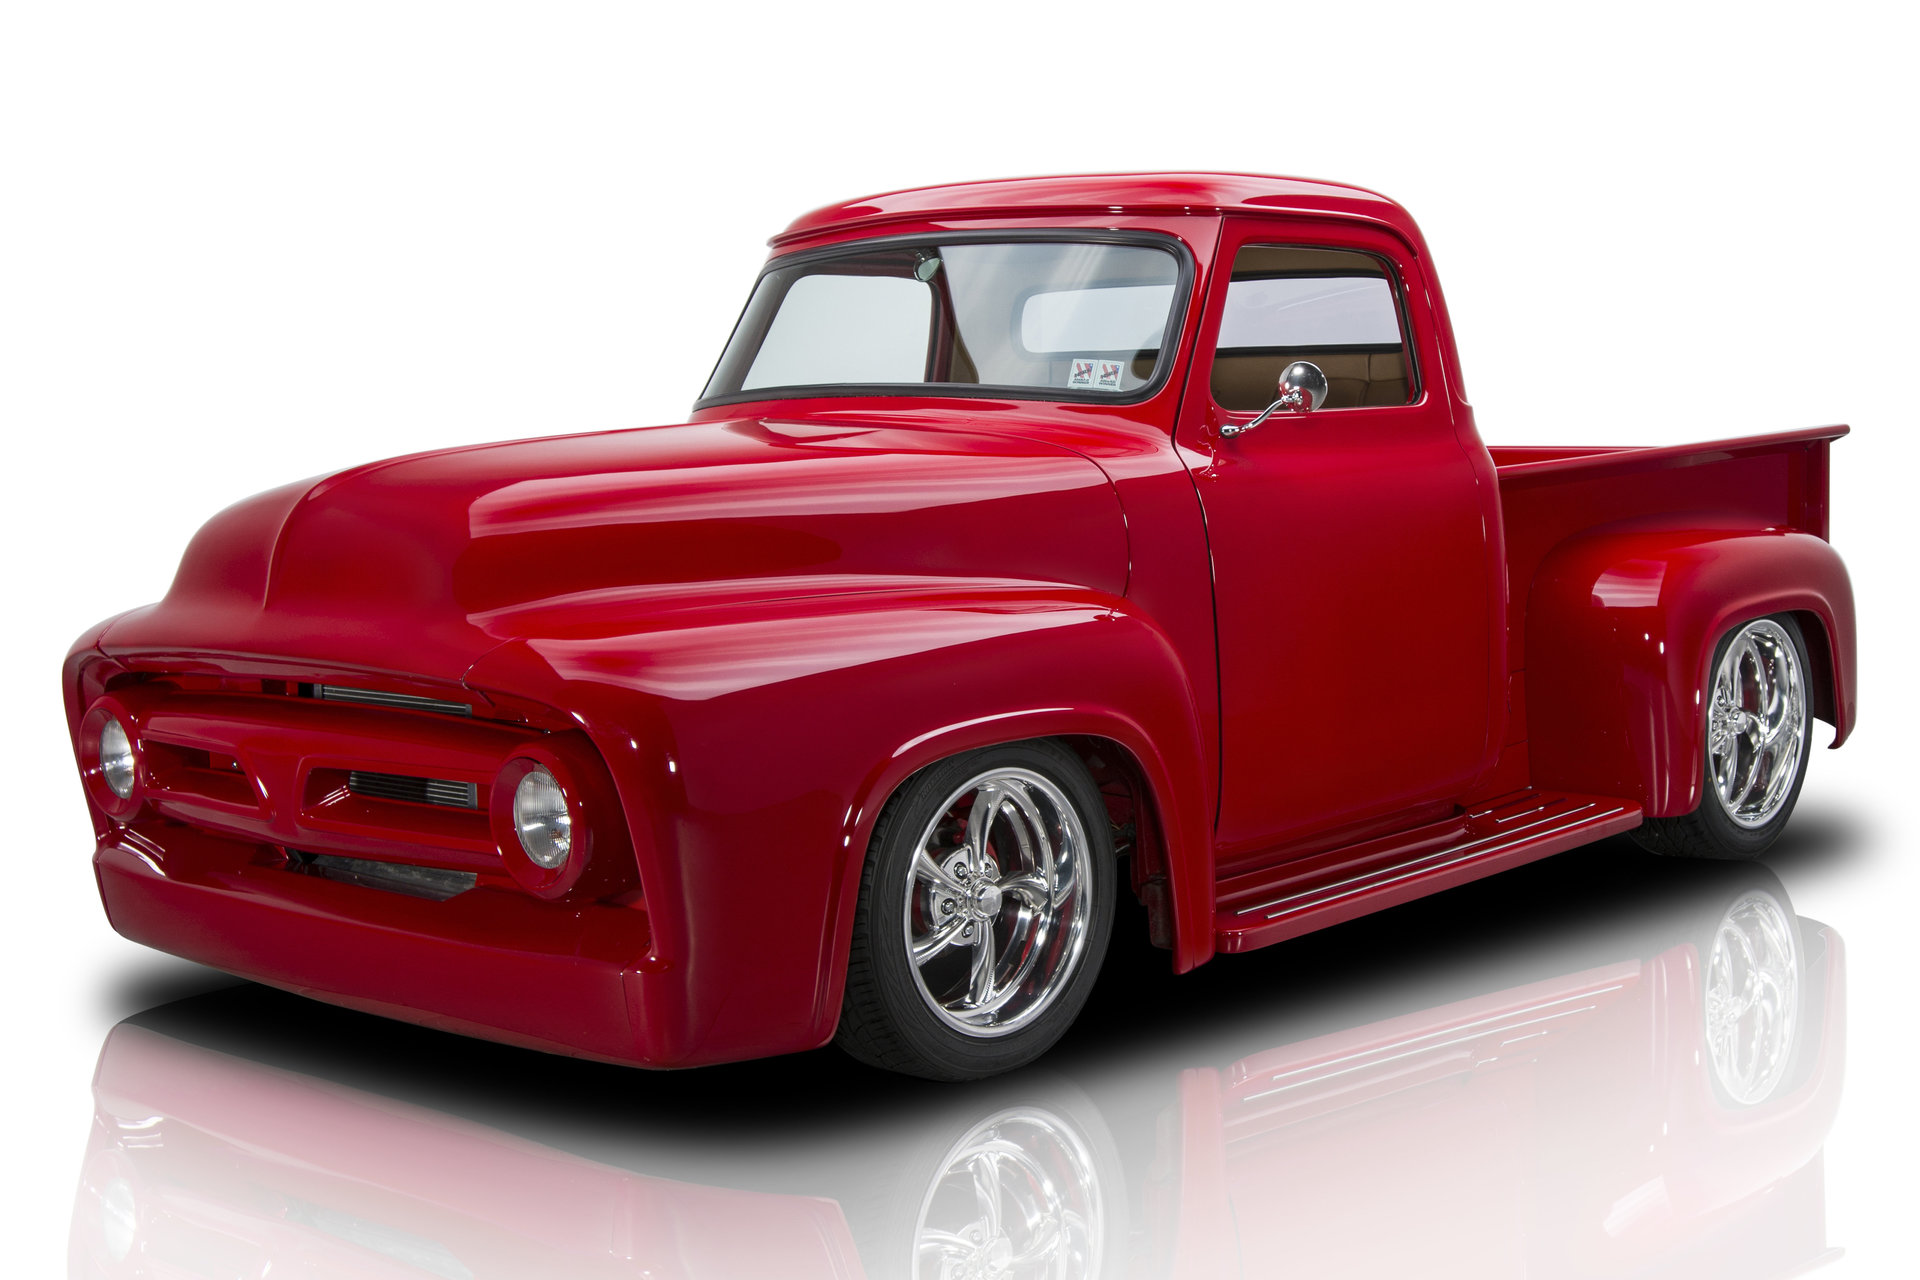 1953 Ford F100 Pickup Truck For Sale 60376 Mcg 1955 Long Bed Pick Up